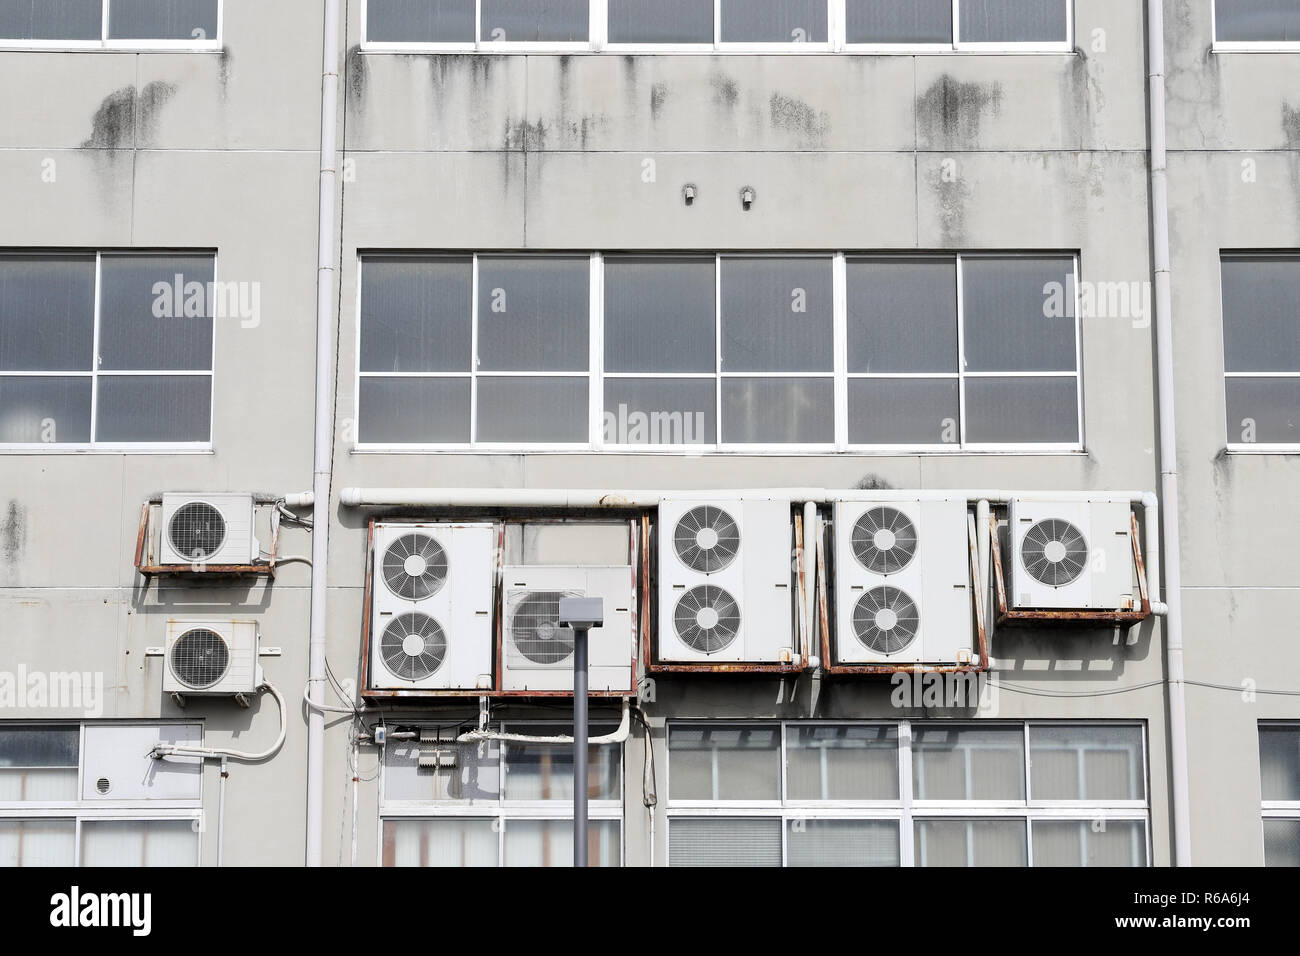 Air conditioners on the wall, Many compressor airs are hanging on a wall - Stock Image